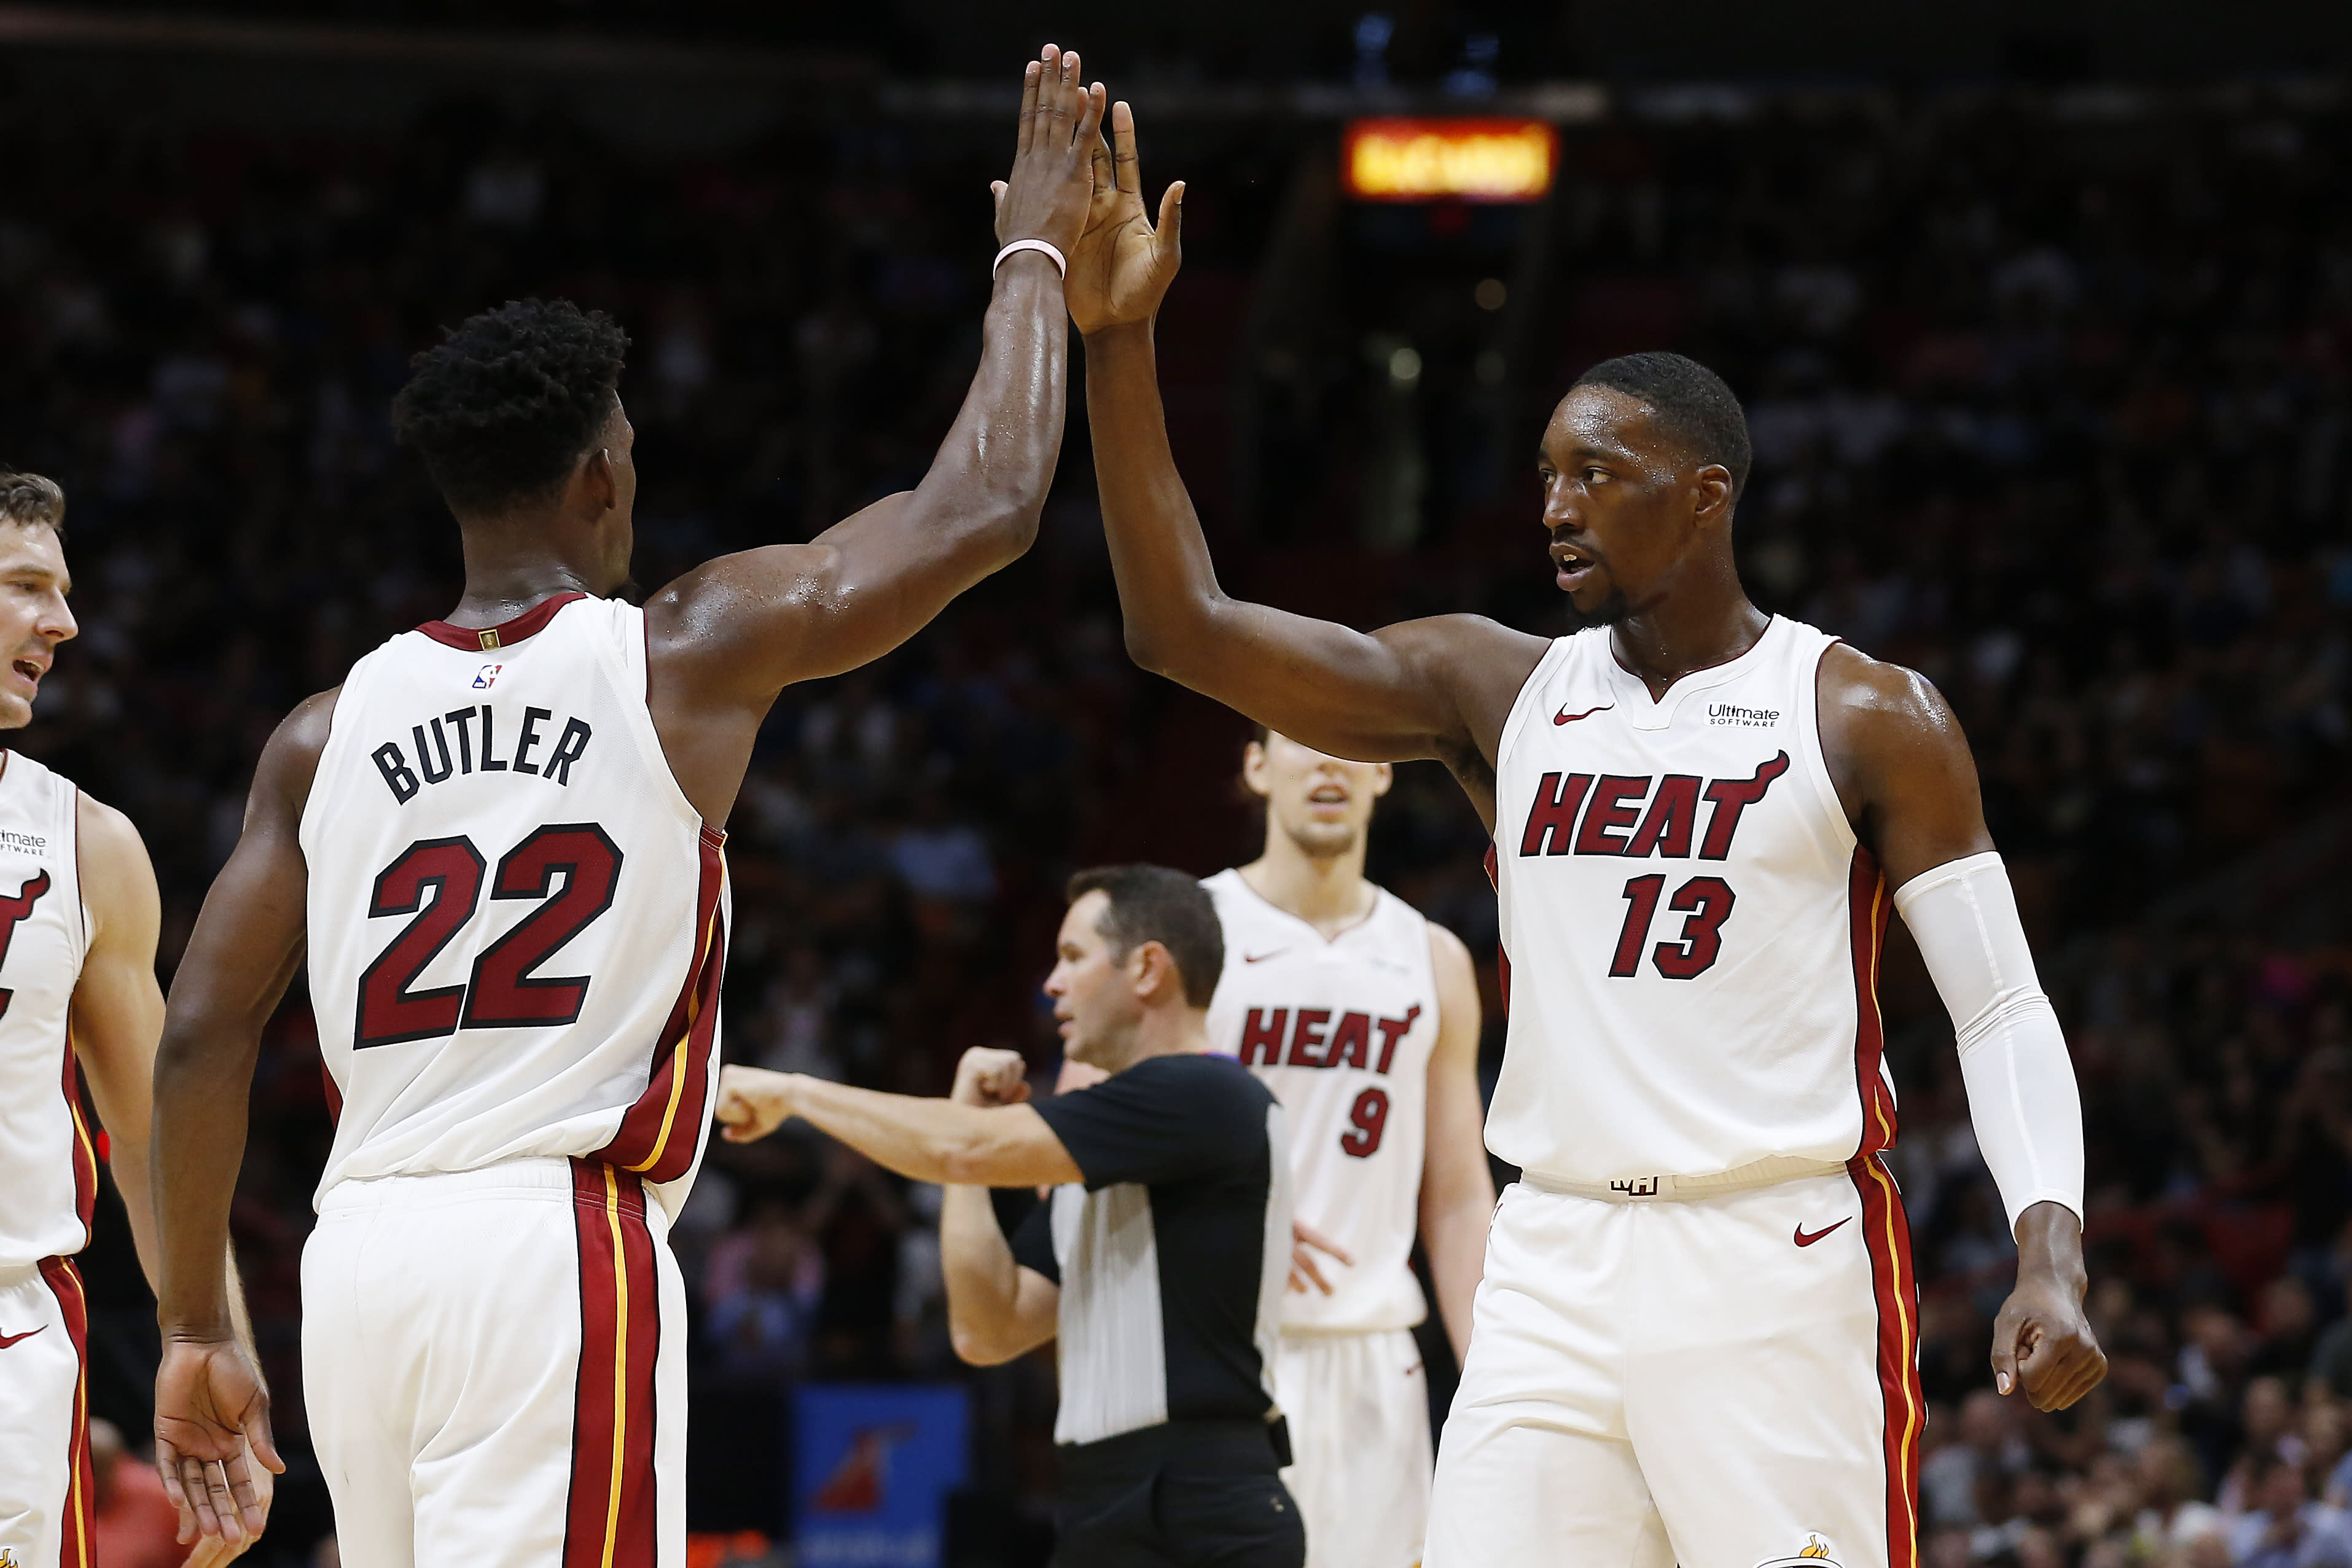 Jimmy Butler Bets Bam Adebayo 500 He Won T Take A 3 Every Game